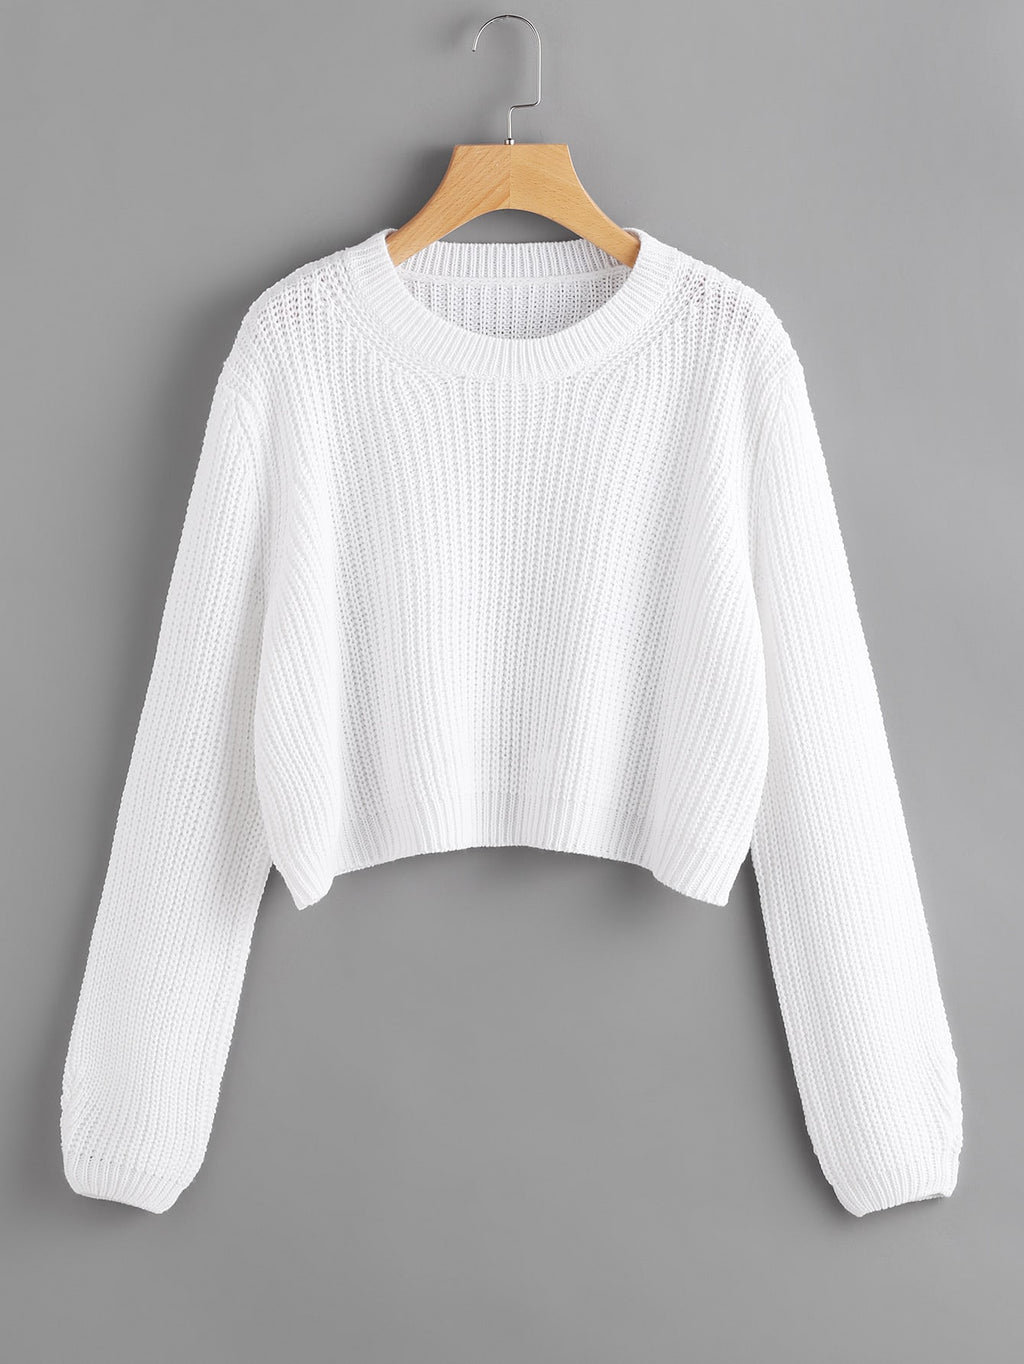 Ribbed Purl Knit Cropped Sweater Autumn Winter